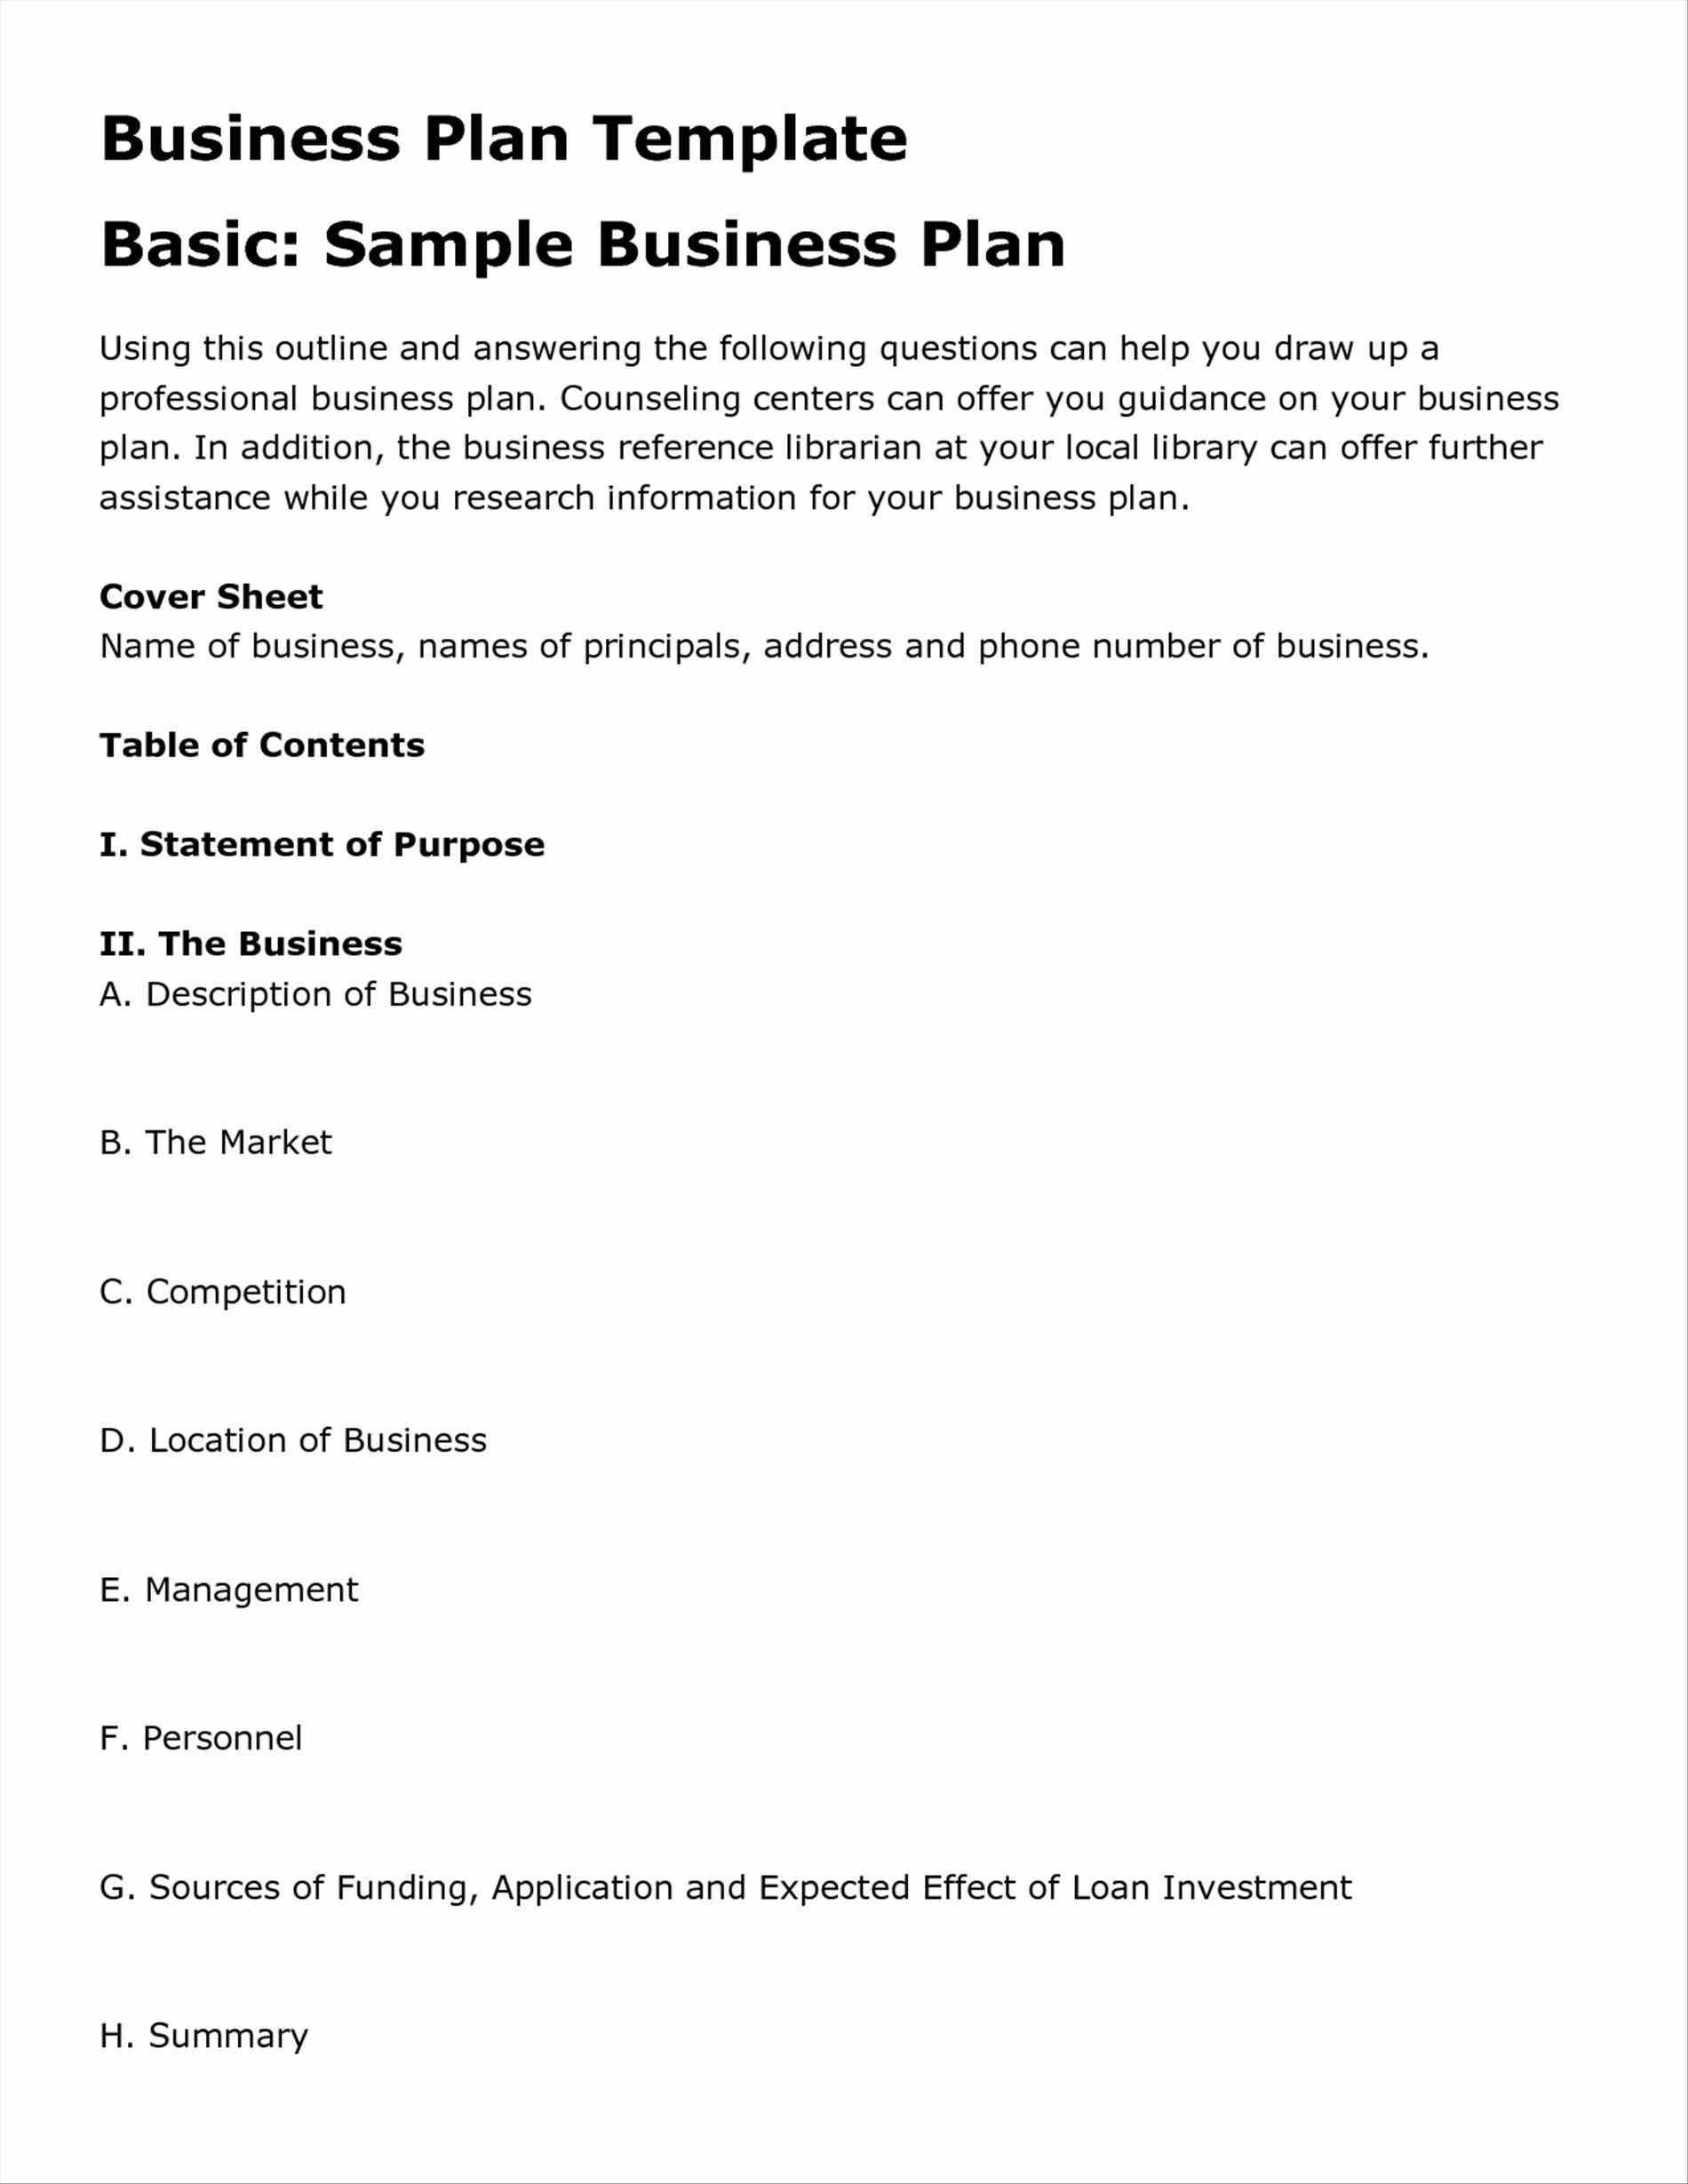 Template For A Business Plan In Word Google Search Business Plan Template Word Business Plan Outline Small Business Plan Template